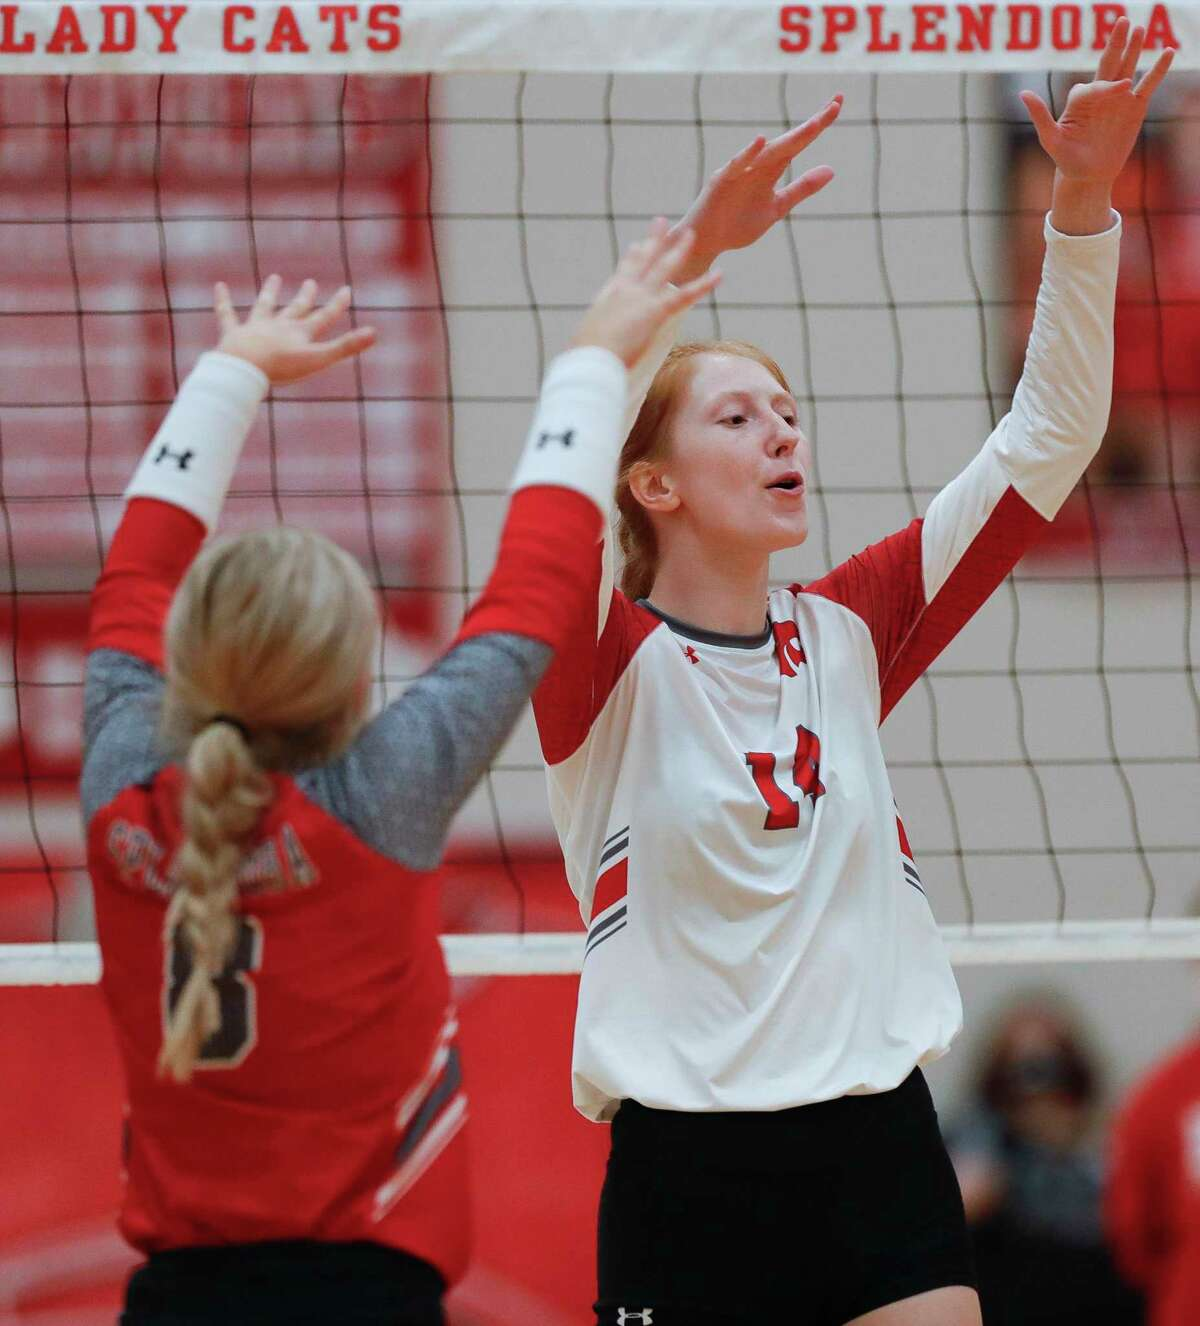 Splendora middle blocker Jalynn Knight (14) reacts after blocking a shot during the third set of a non-district high school volleyball match at Splendora High School, Tuesday, Aug. 18, 2020, in Splendora.